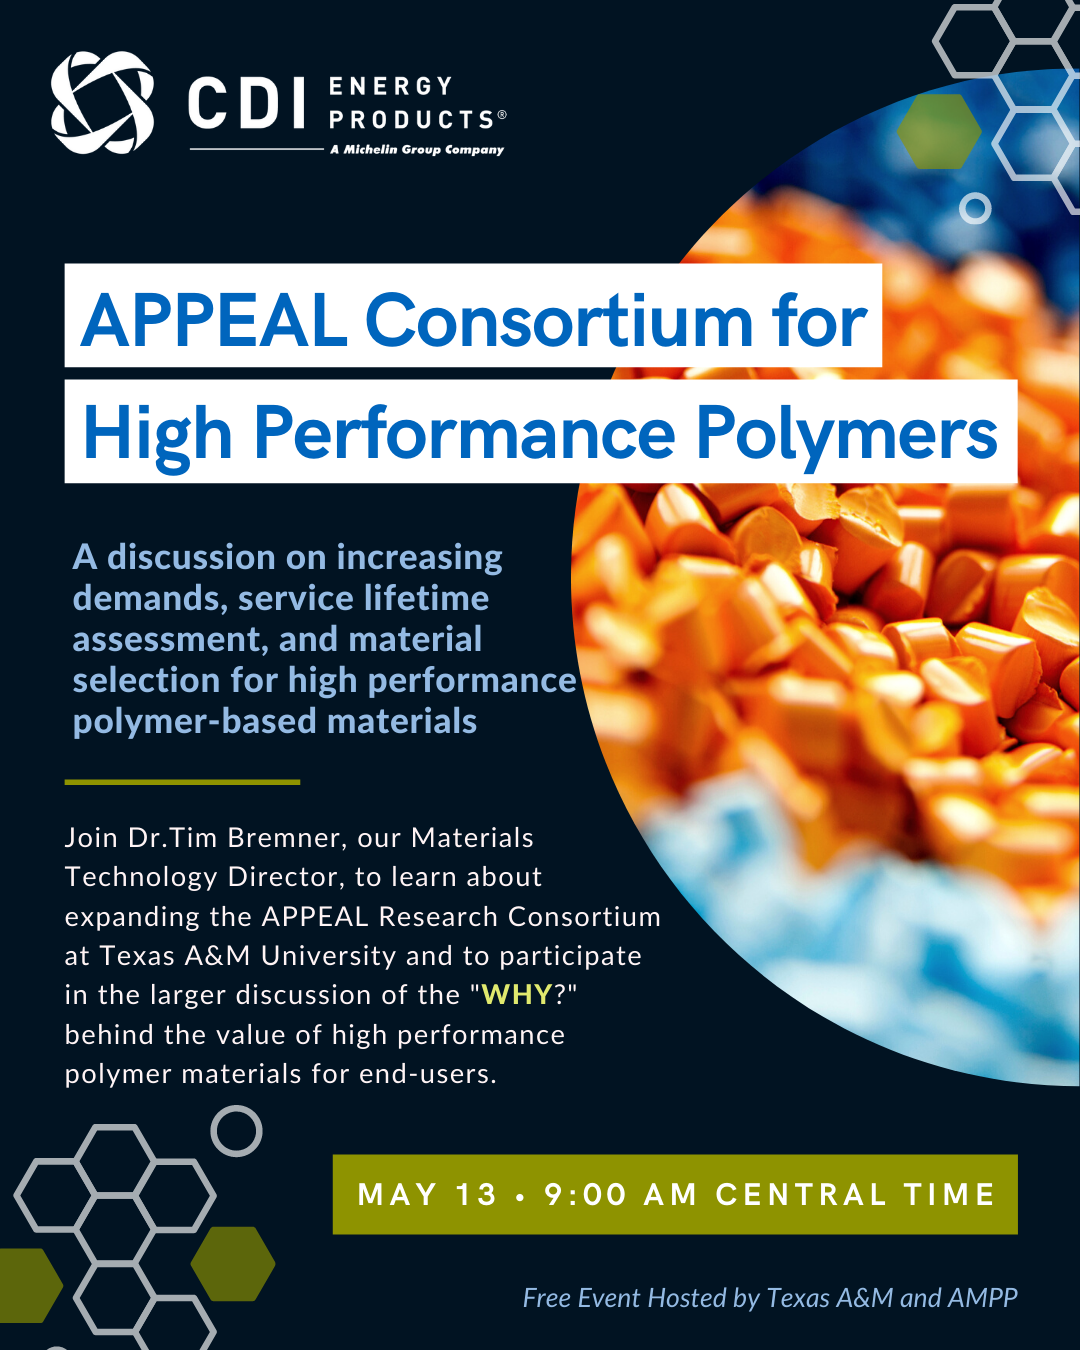 APPEAL Consortium for High Performance Polymers